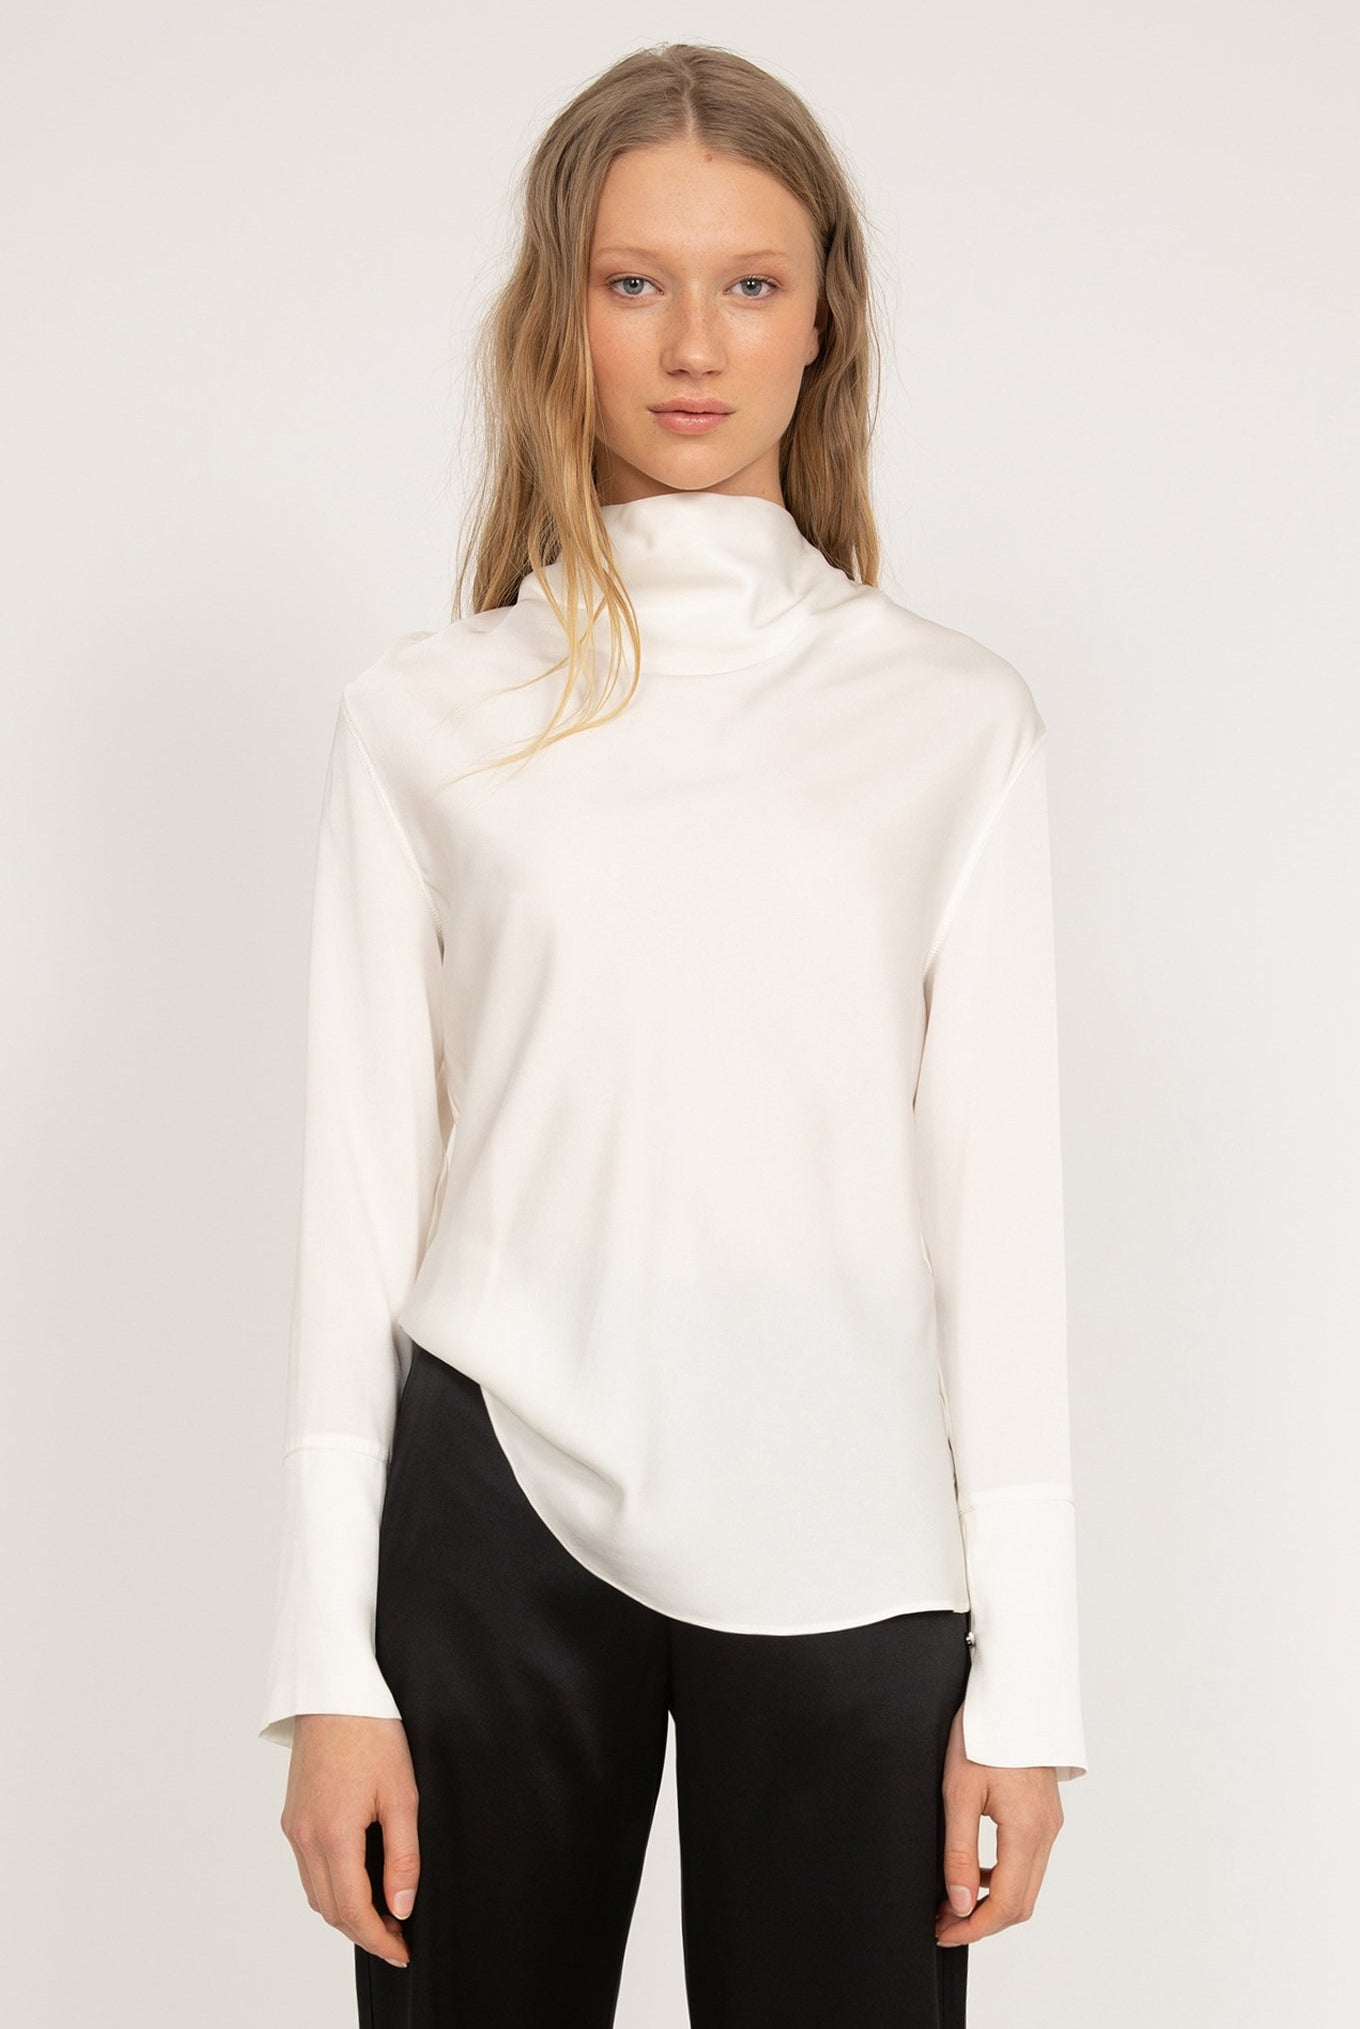 Ahlvar Gallery Ayumi Blouse in Off White with long sleeves and a draped, bias-cut front